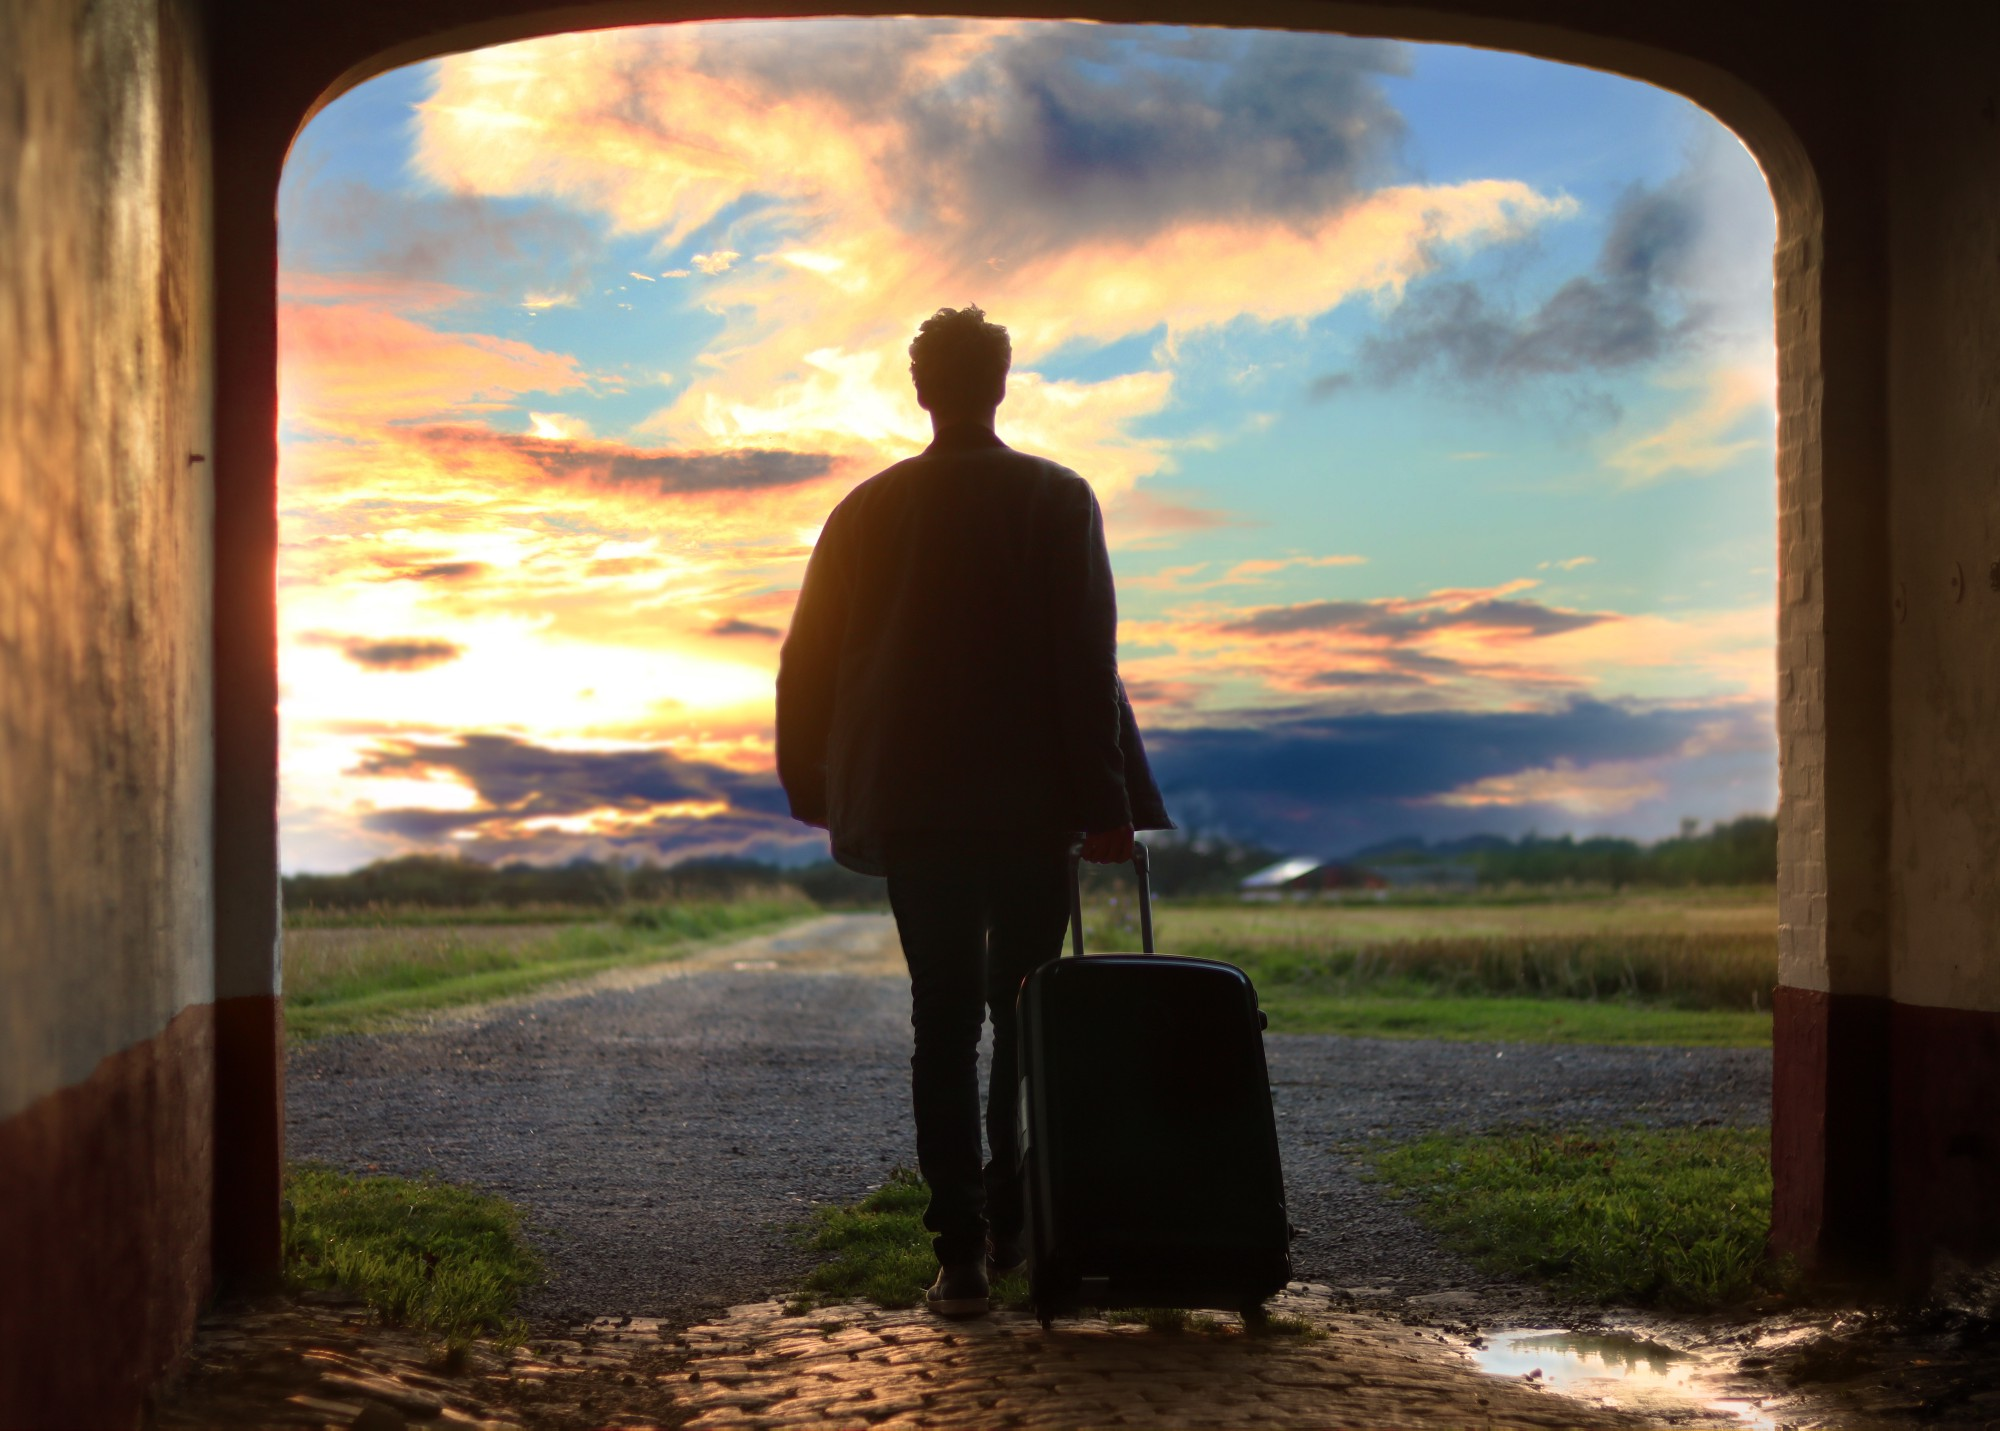 Man with suitcase and sunset